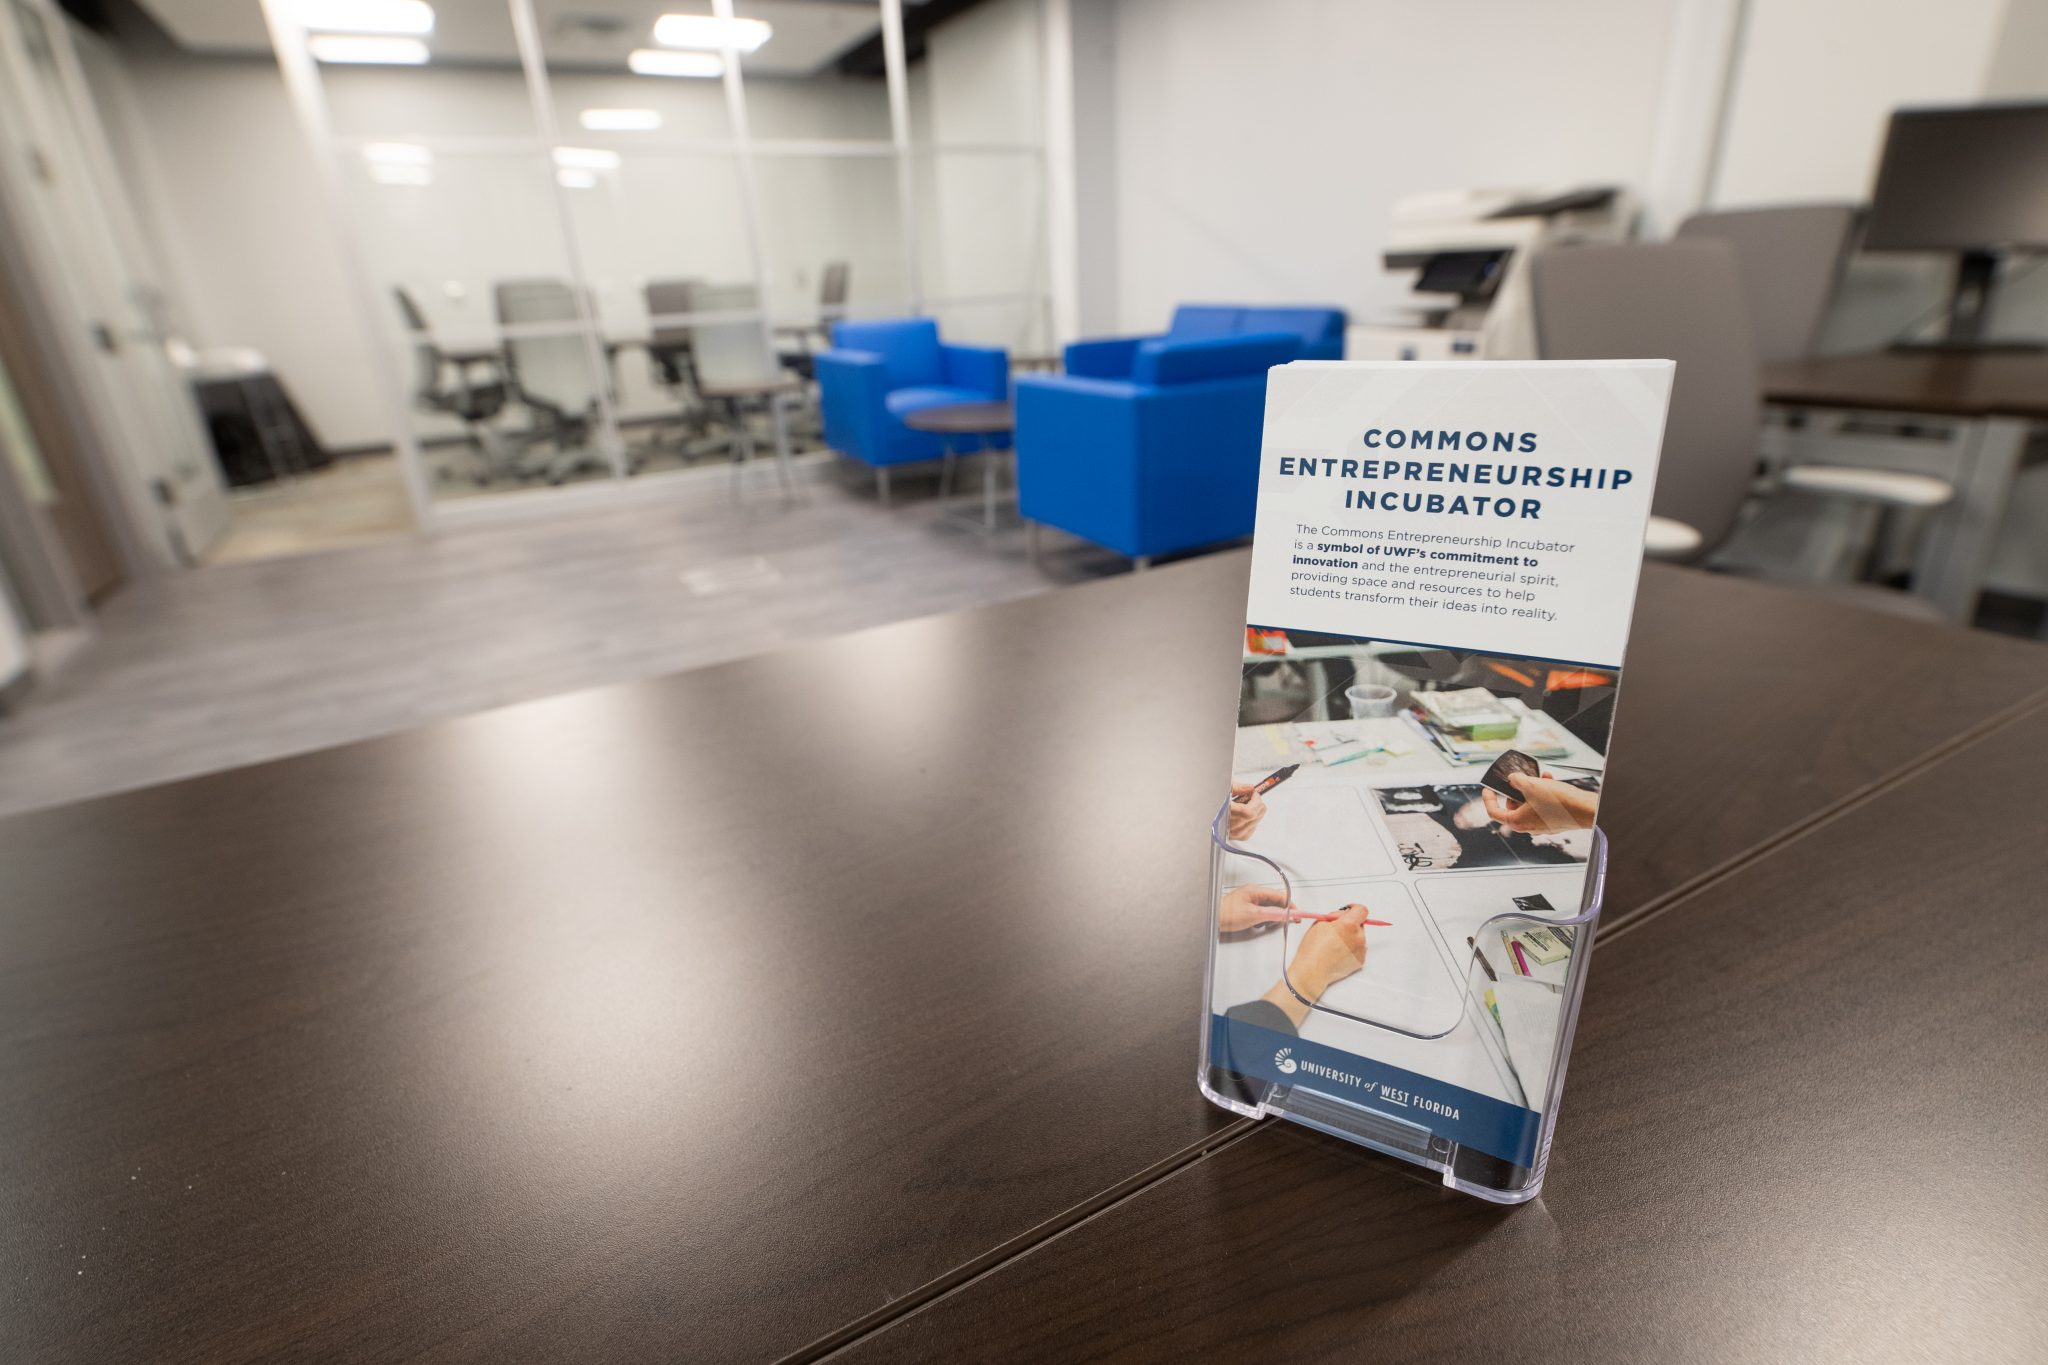 The Commons Entreprenuership Incubator is a symbol of UWF's commitment to innovation and the entrepreneurial spirit, providing space and resources to help students transform thier ideas into reality.